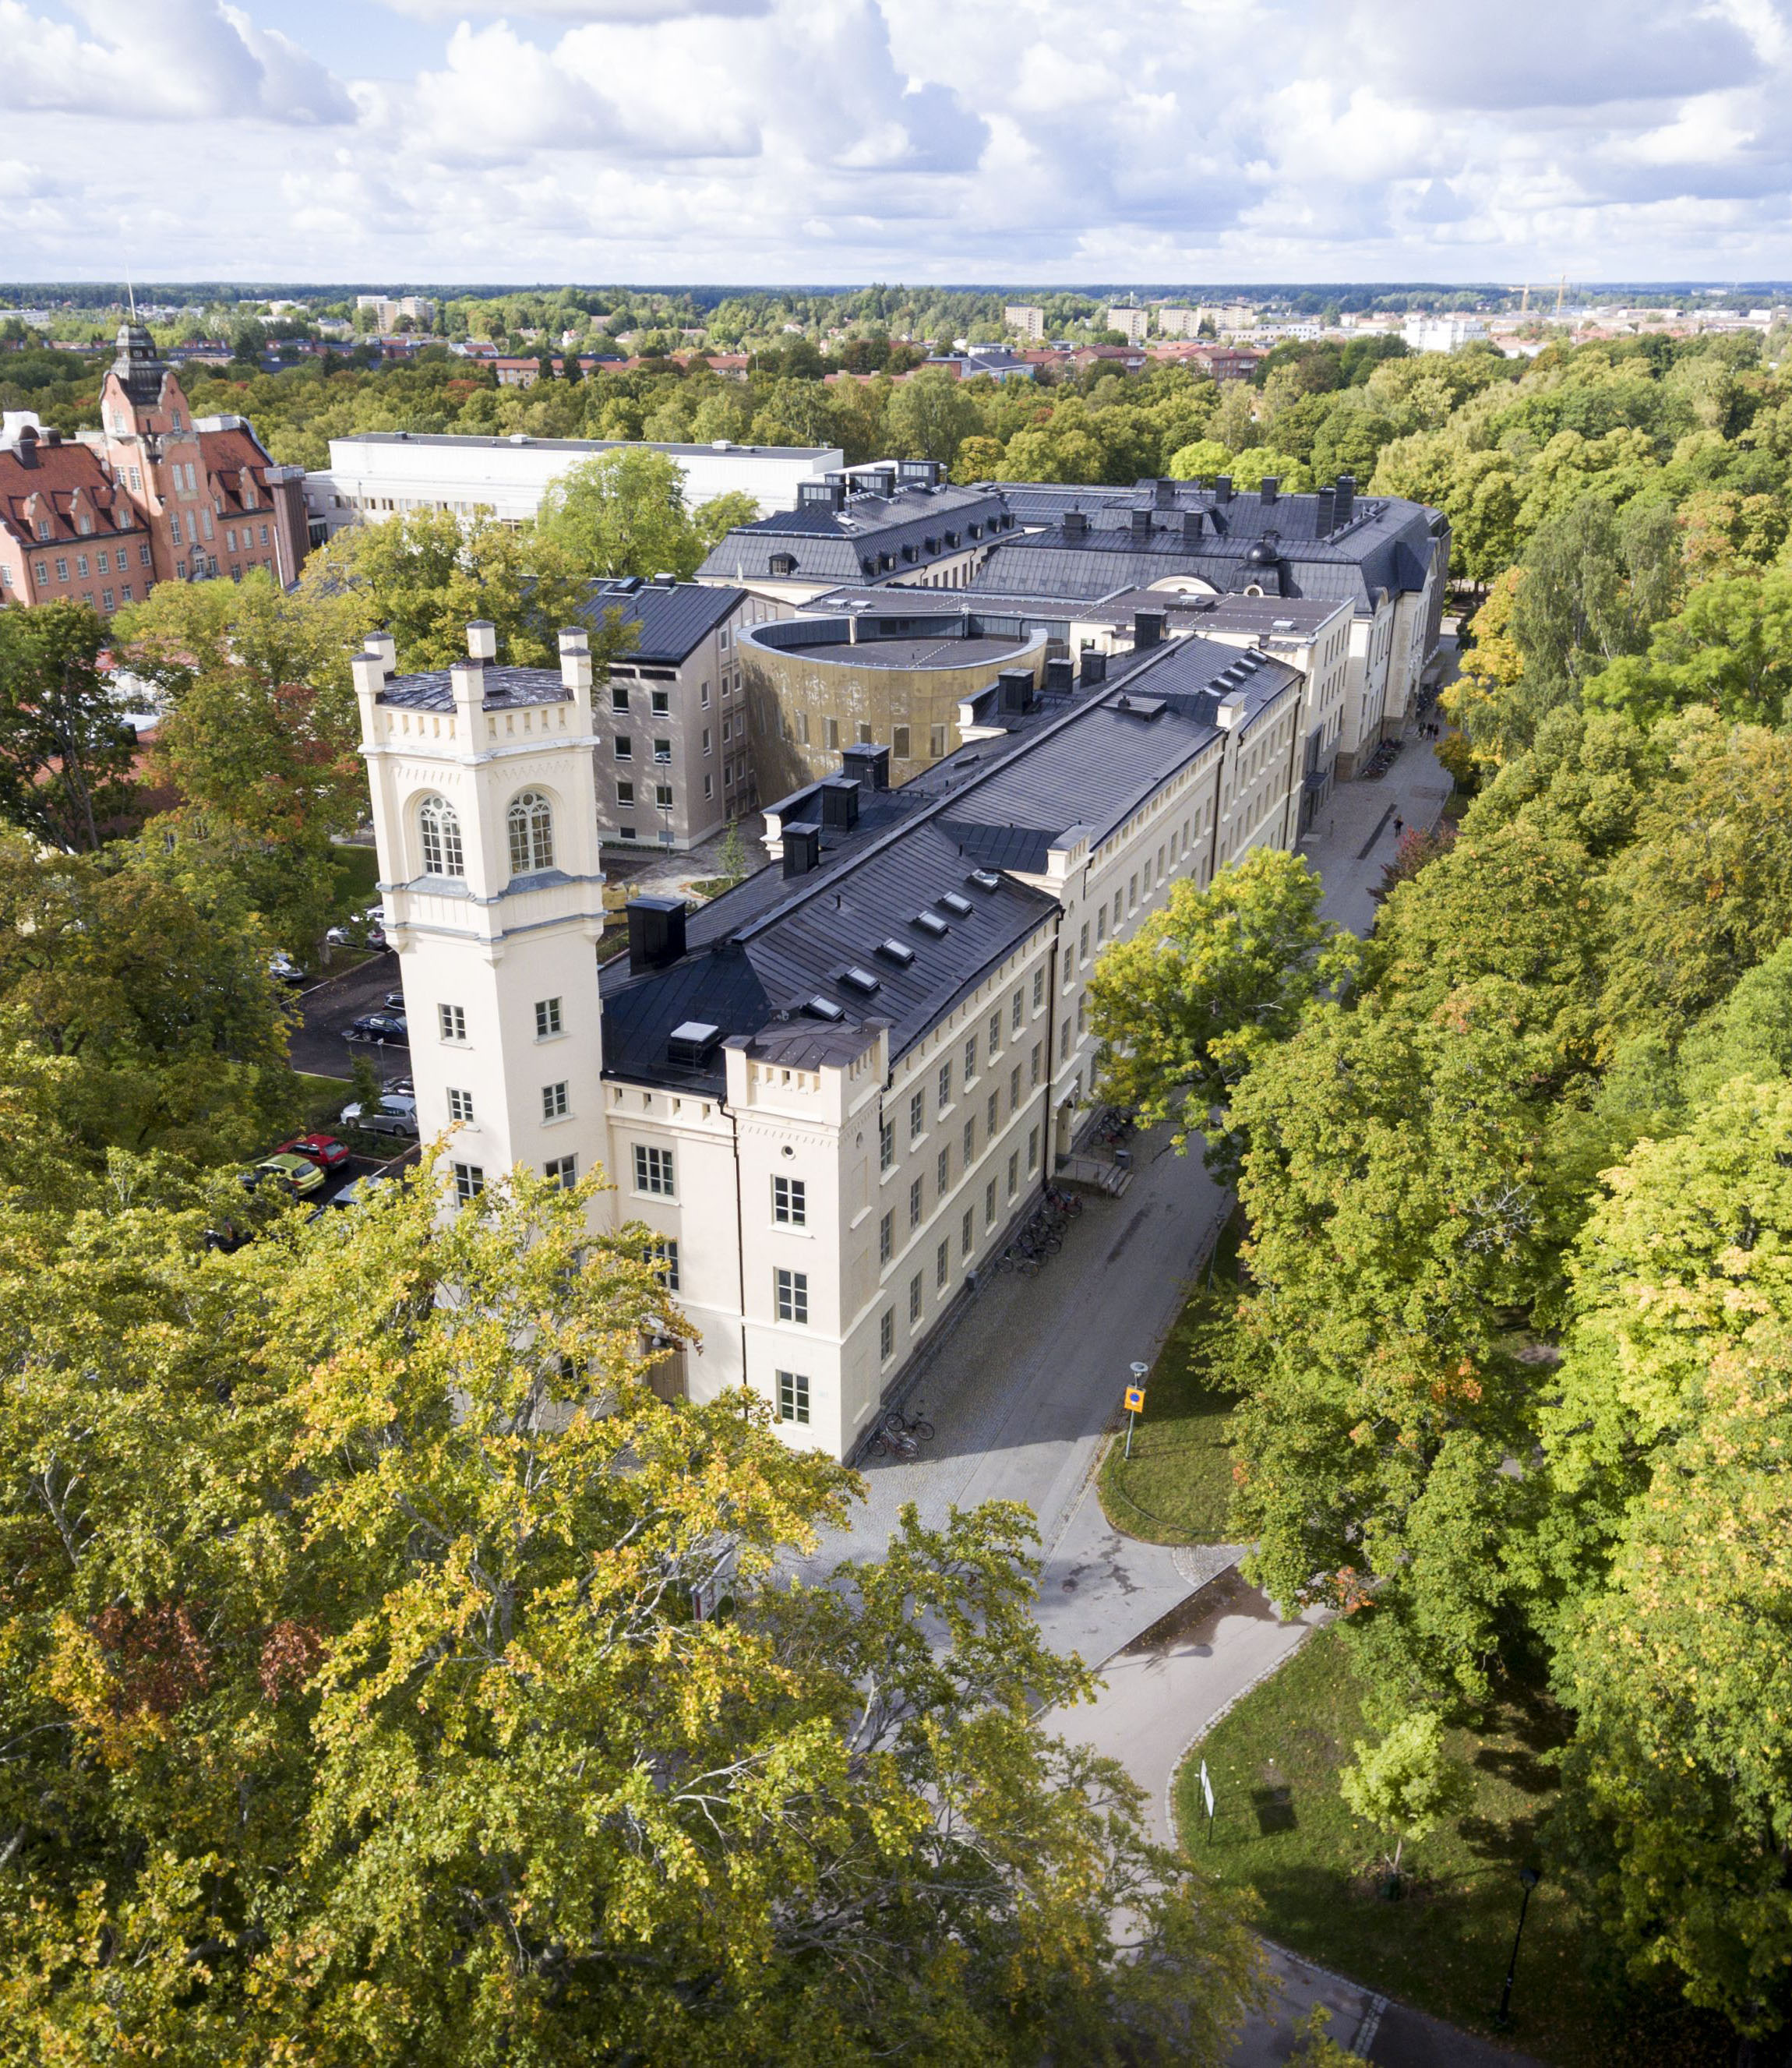 Arial view of Engeslka Parken campus